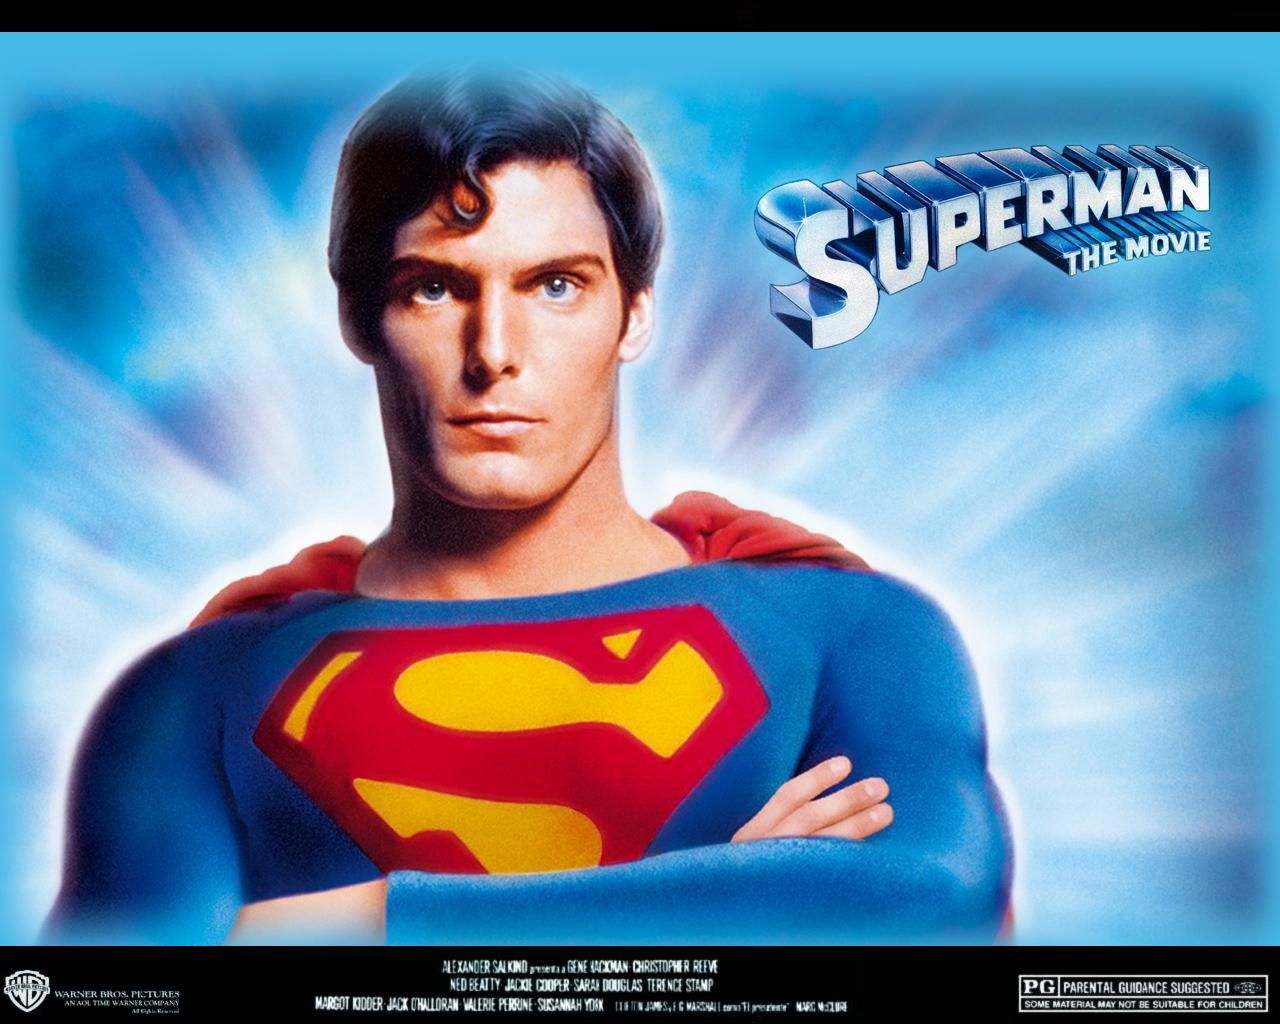 http://4.bp.blogspot.com/-f-BOD8AoqY4/UOwn4JHibQI/AAAAAAAAEig/PtdIqPTJJ7I/s1600/Superman-The-Movie-1-1152x864.jpg